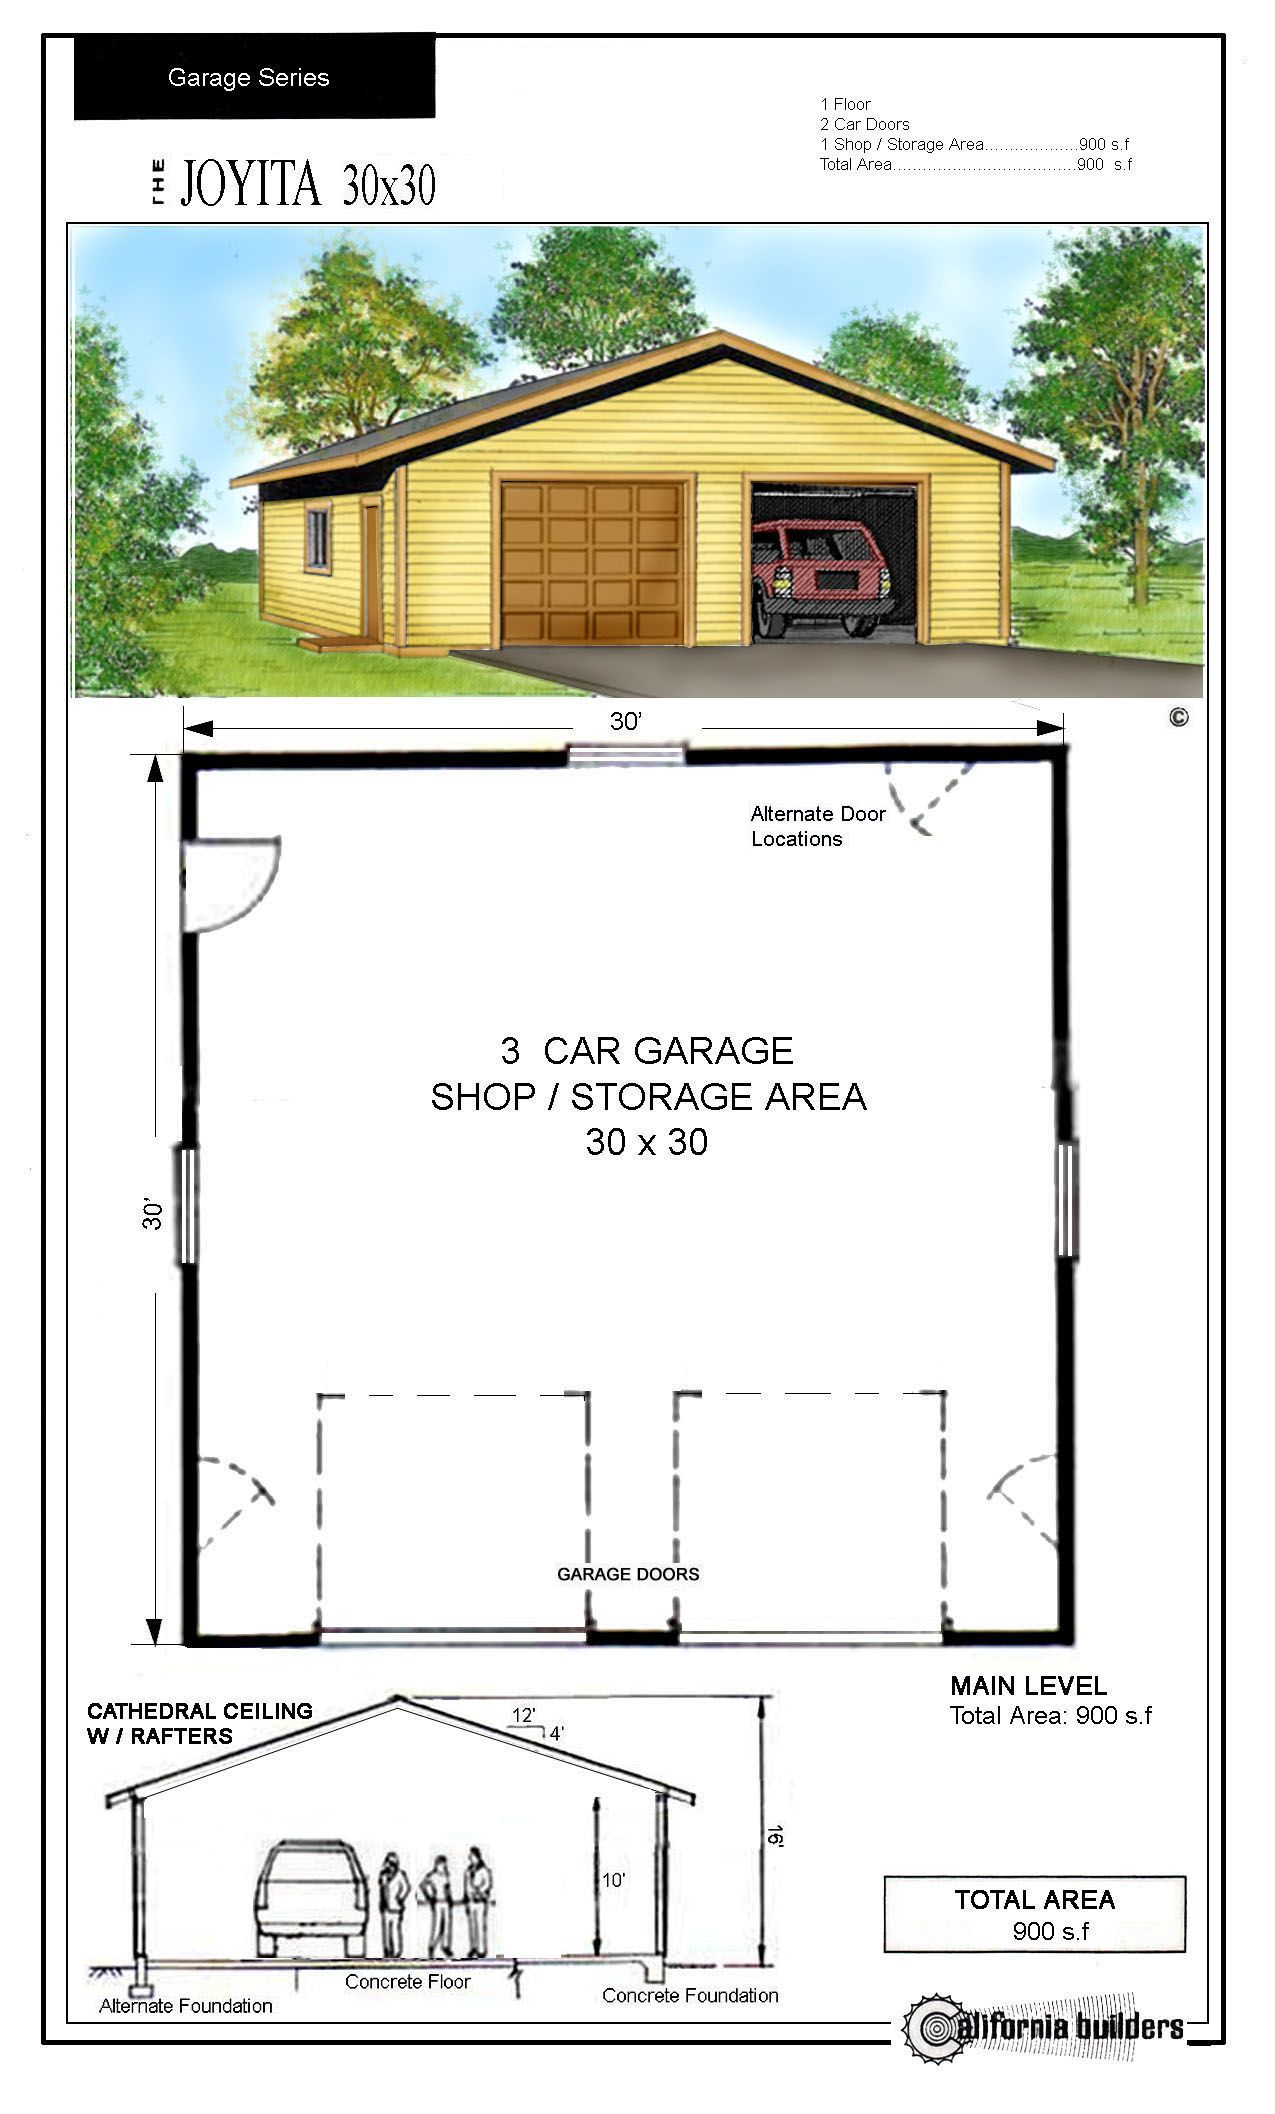 Garage Kits Cbi Kit Homes Garage Plans Garage Floor Plans Garage Building Plans